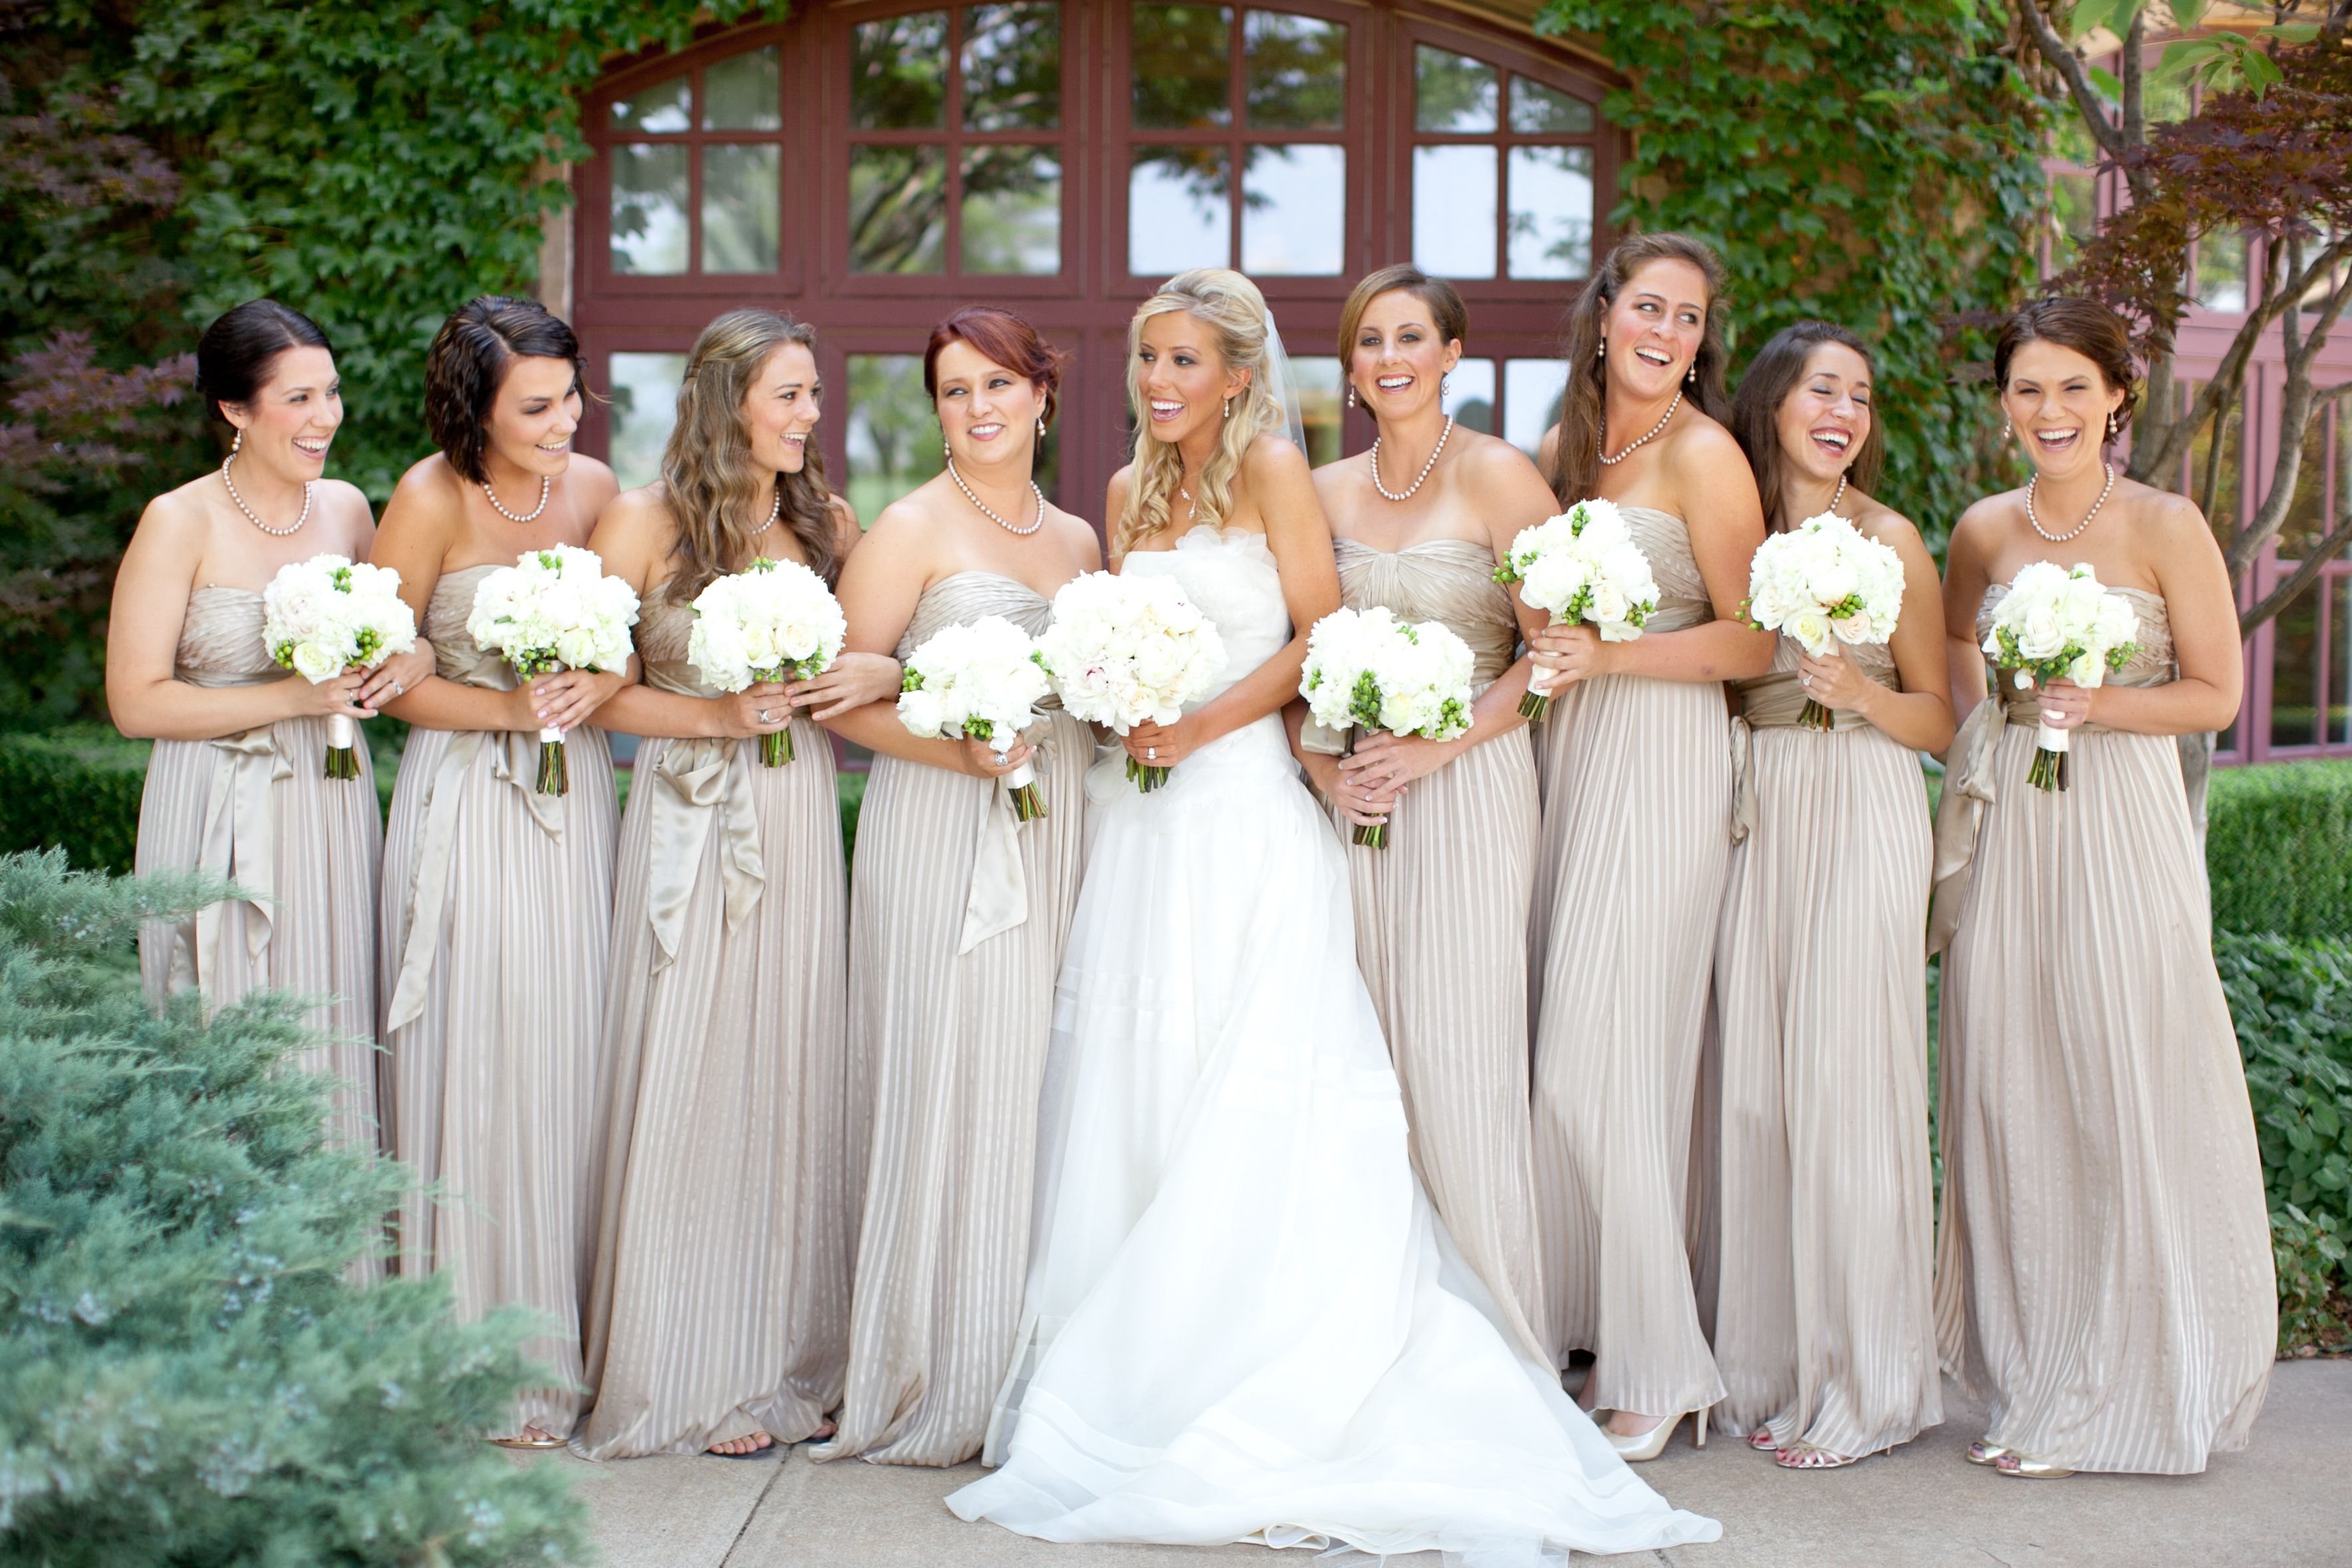 Everyone sparkles in this photo champagne bridesmaids i do champagne bcbg bridesmaid dresses the exact colors i want plus a hint of blue ombrellifo Images